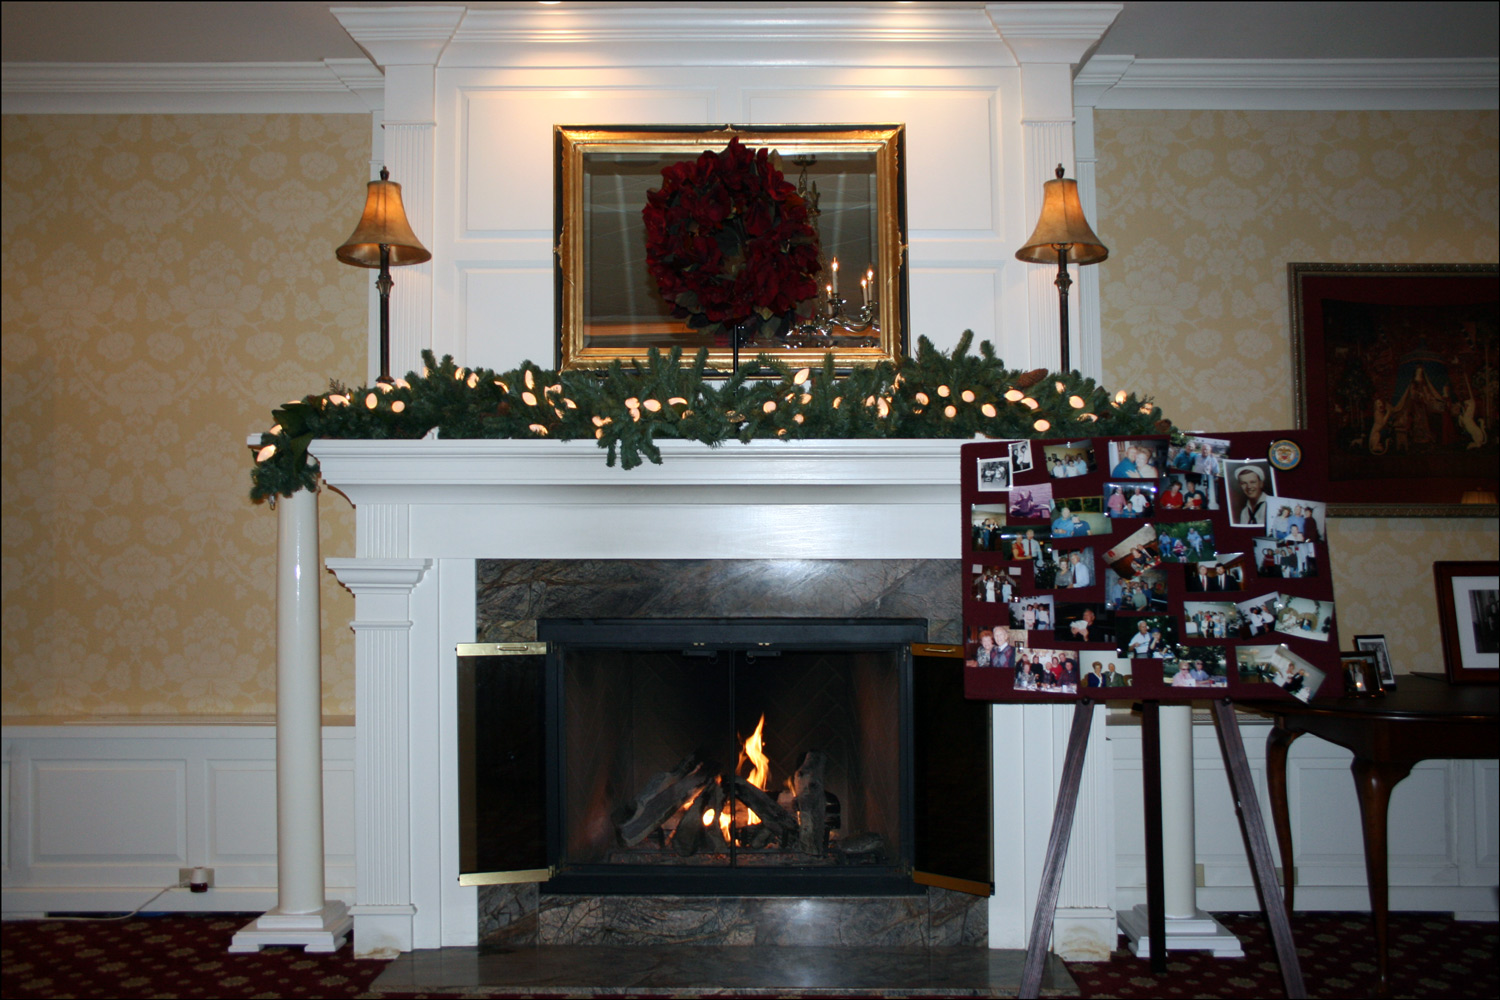 Fireplace and Family Photos